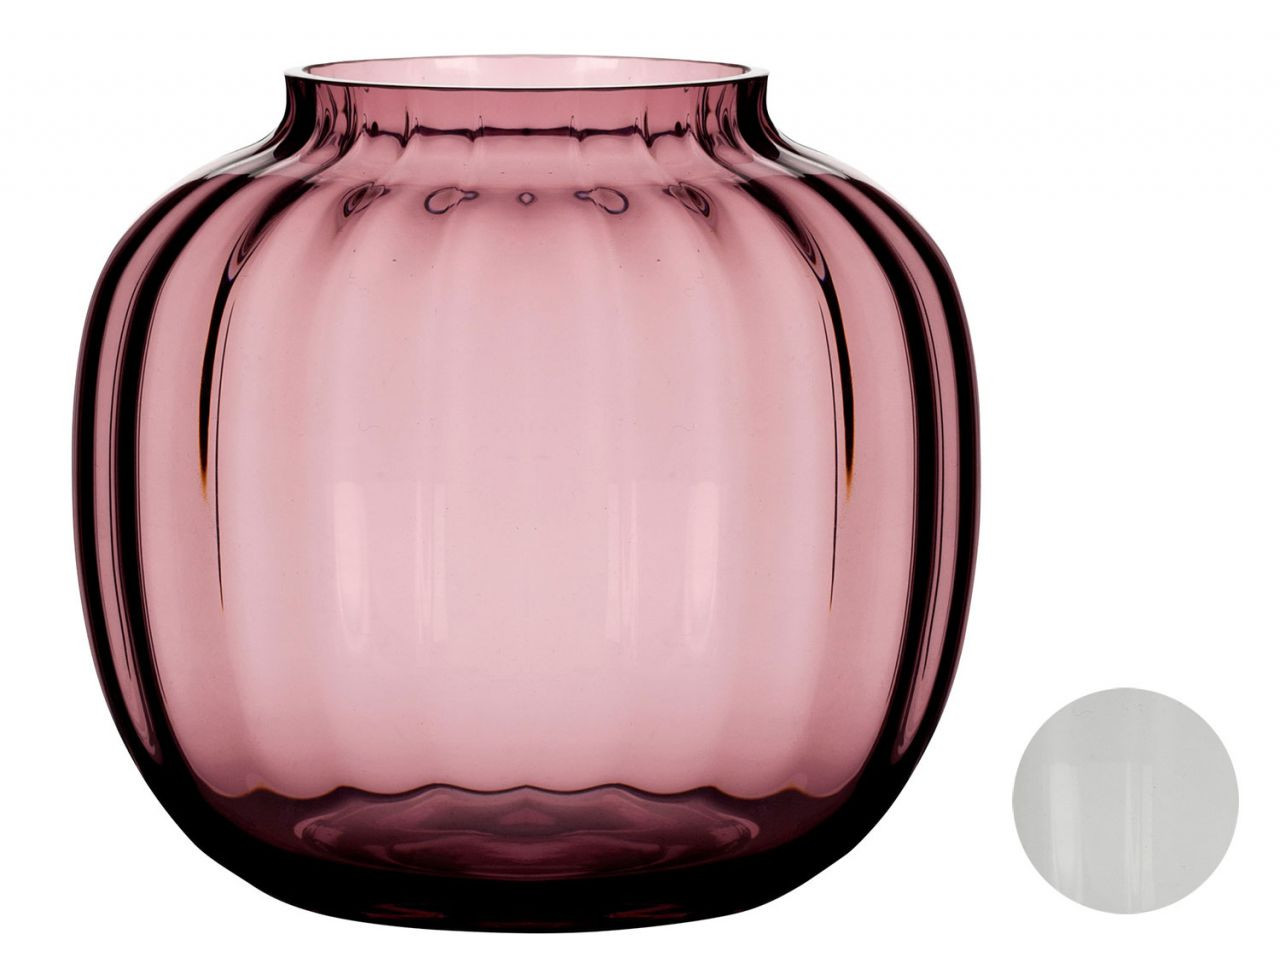 pink ceramic vase of holmegaard primula vase height 145 cm scandinavian lifestyle for 5706422102982 v 0001 1280x1280